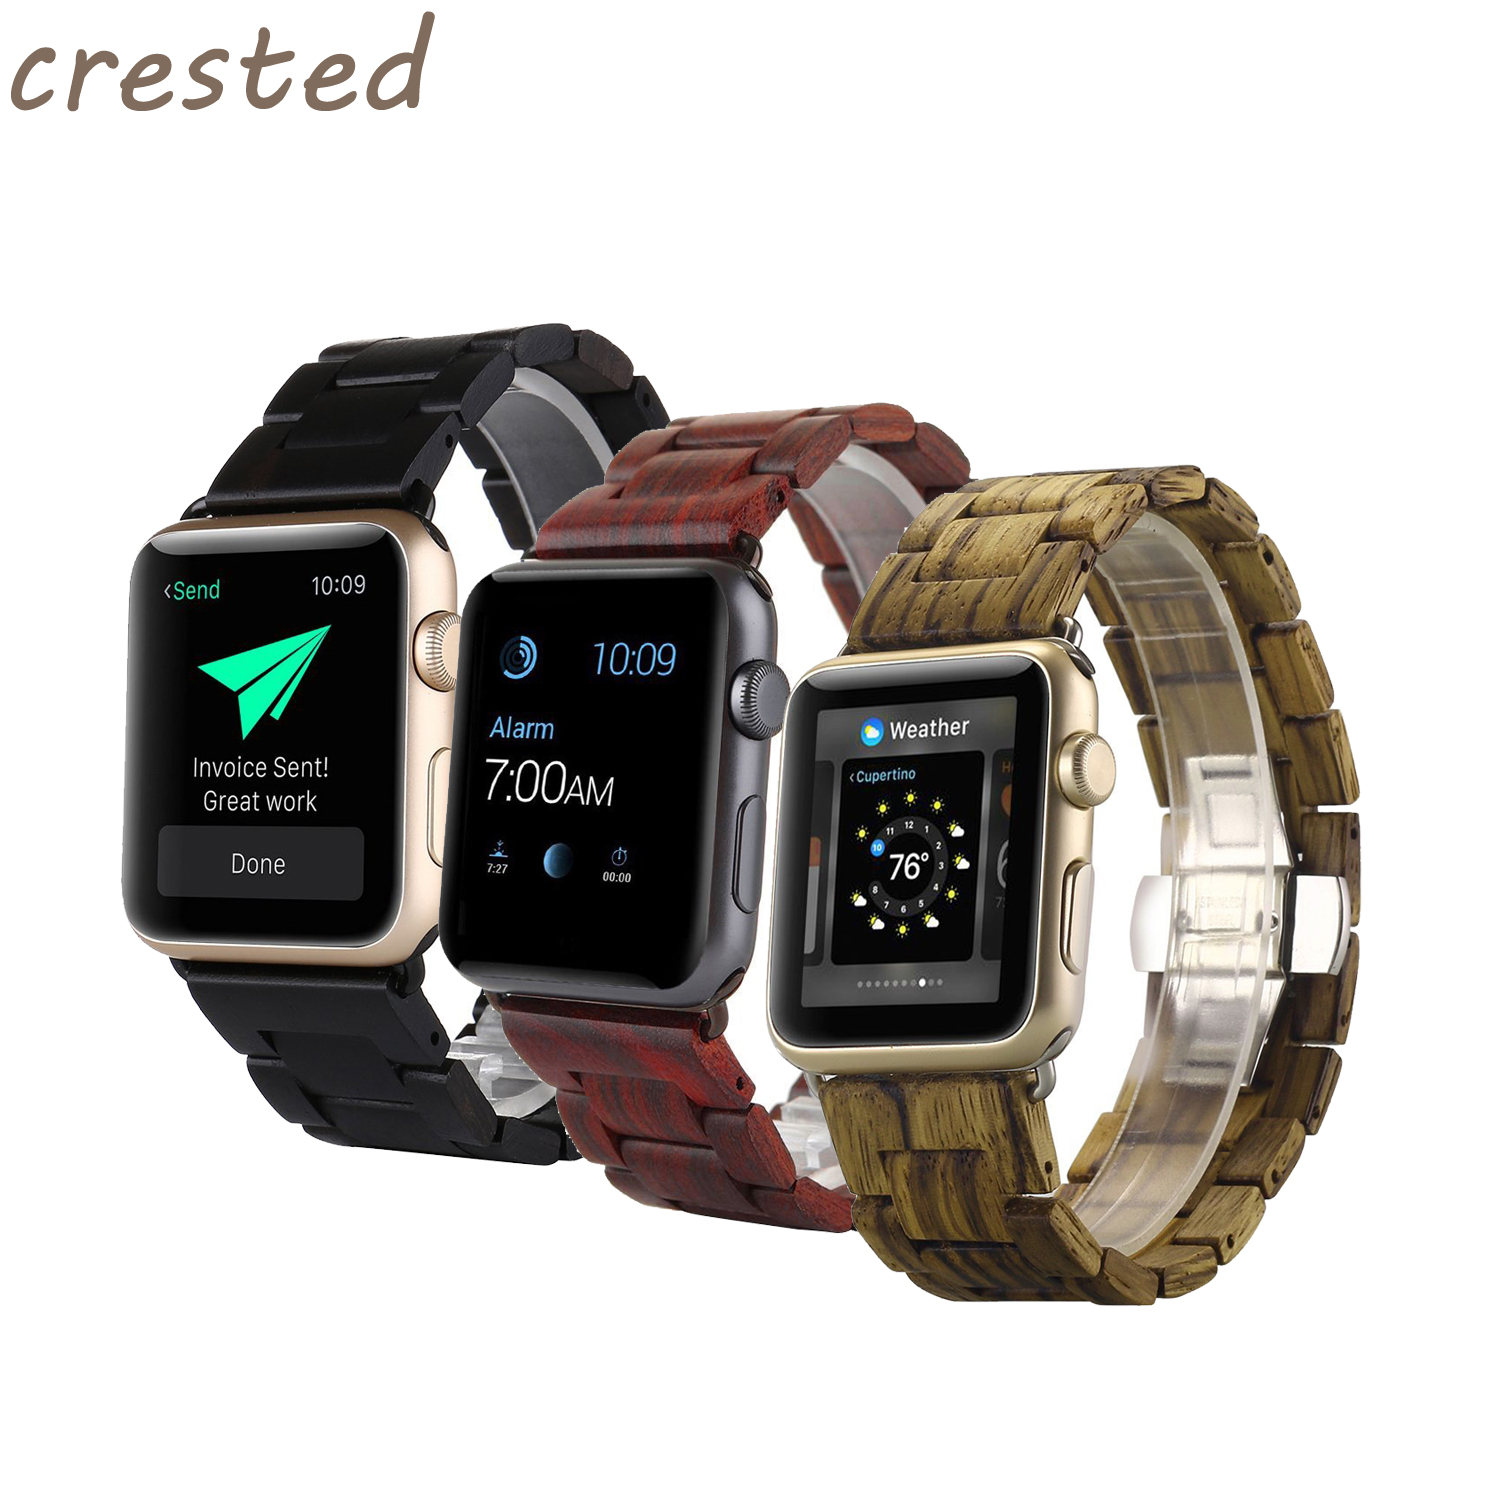 CRESTED Natural Wooden band for apple watch 3 42mm/38mm iwatch 3/2/1 Butterfly buckle strap wristband Bracelet smart Watch Band crested nylon band strap for apple watch band 3 42mm 38mm survival rope wrist bracelet watch strap for apple iwatch 3 2 1 black